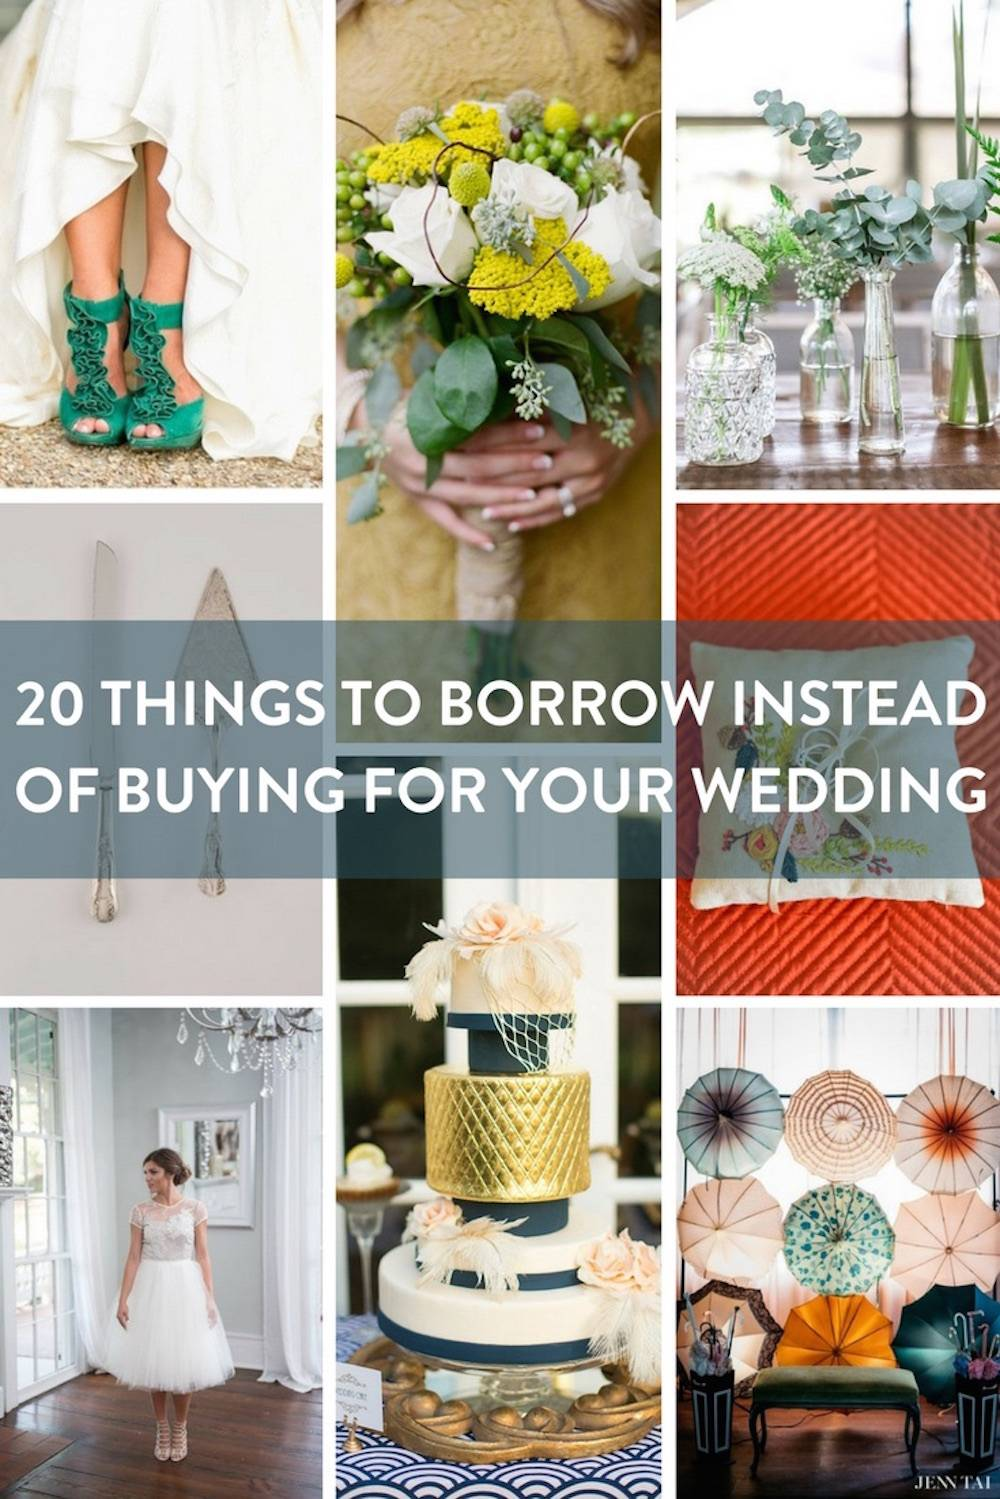 20 Things to Borrow Instead of Buy For Your Wedding